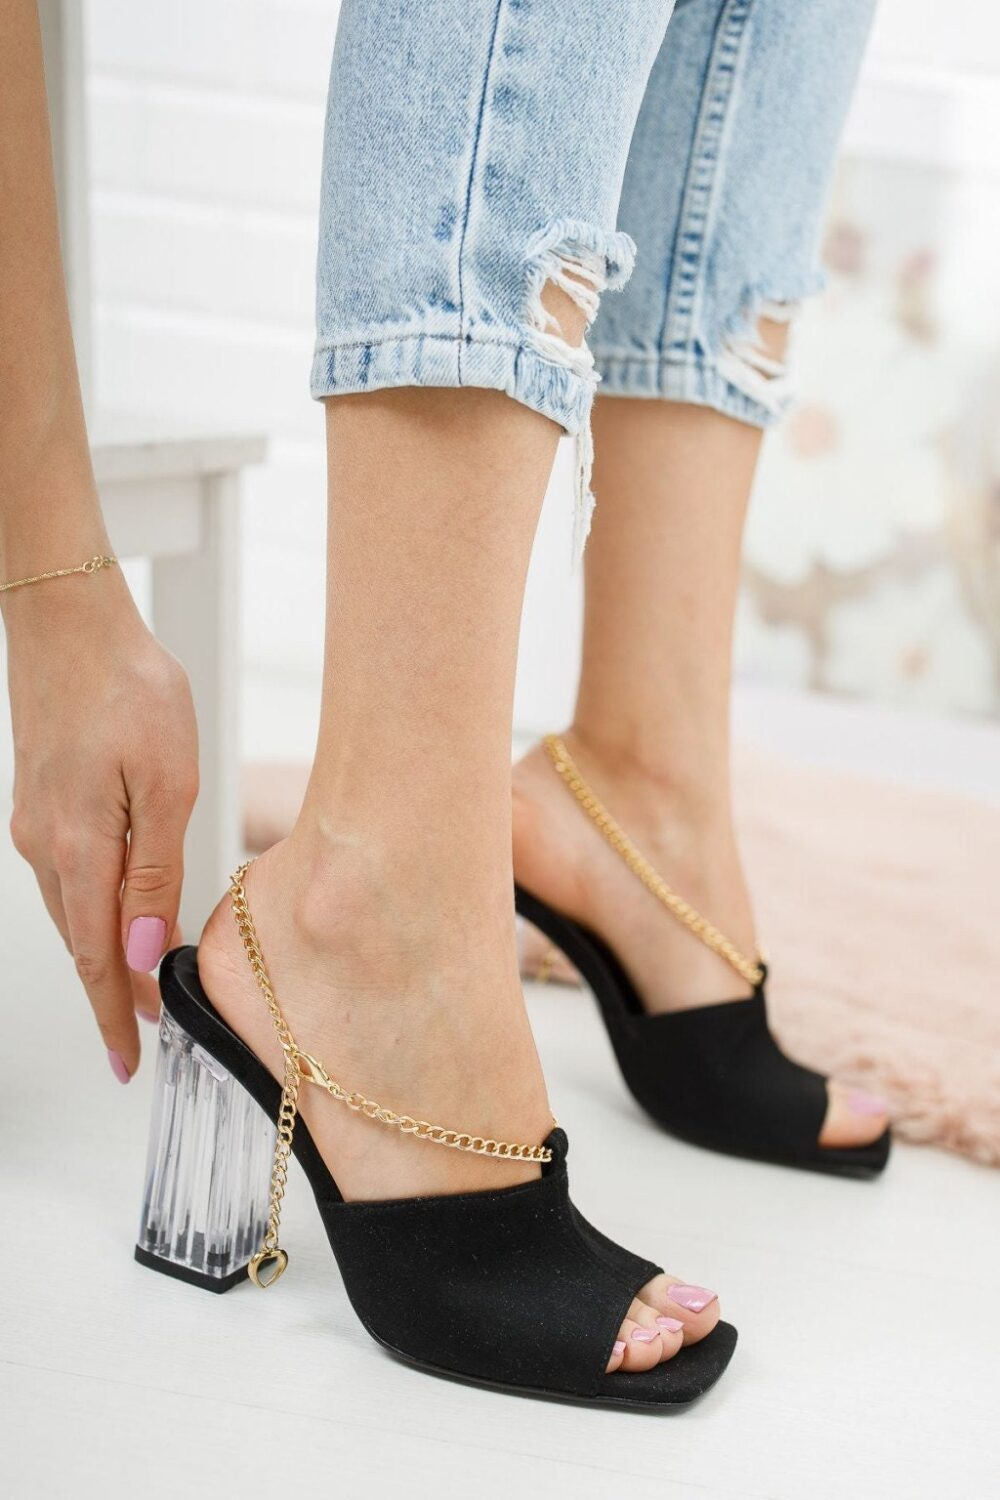 Black Open Toe Gold Chain Clear Heels Sandals For Womens Wedding Shoes, Classic Fashionable Barefoot 10 cm Heel